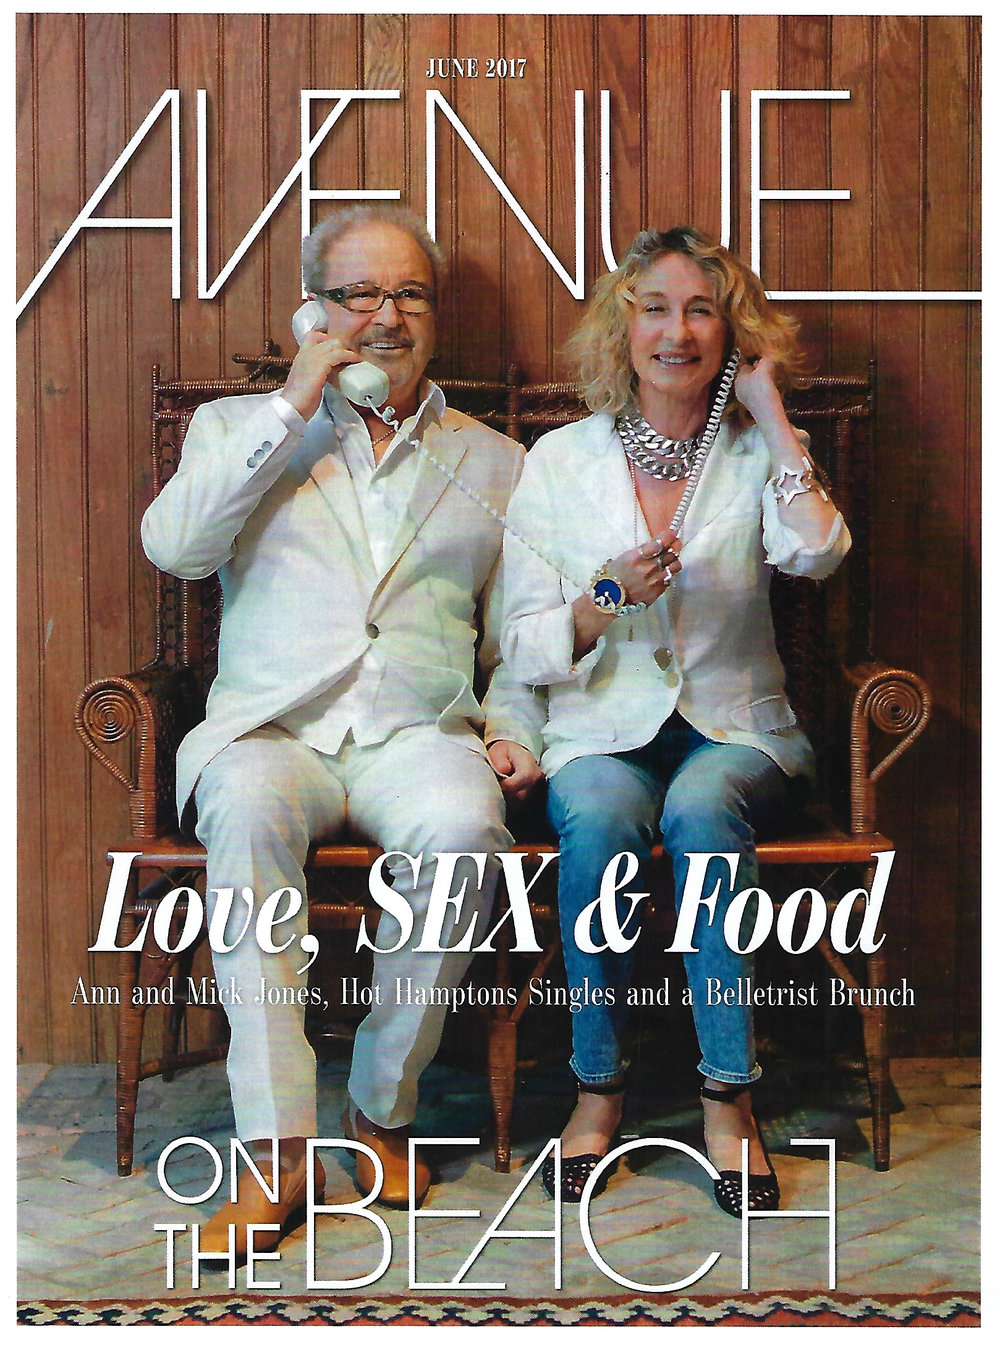 Avenue Magazine - FA Knows Good Landscaping_cover_June 2017.jpg